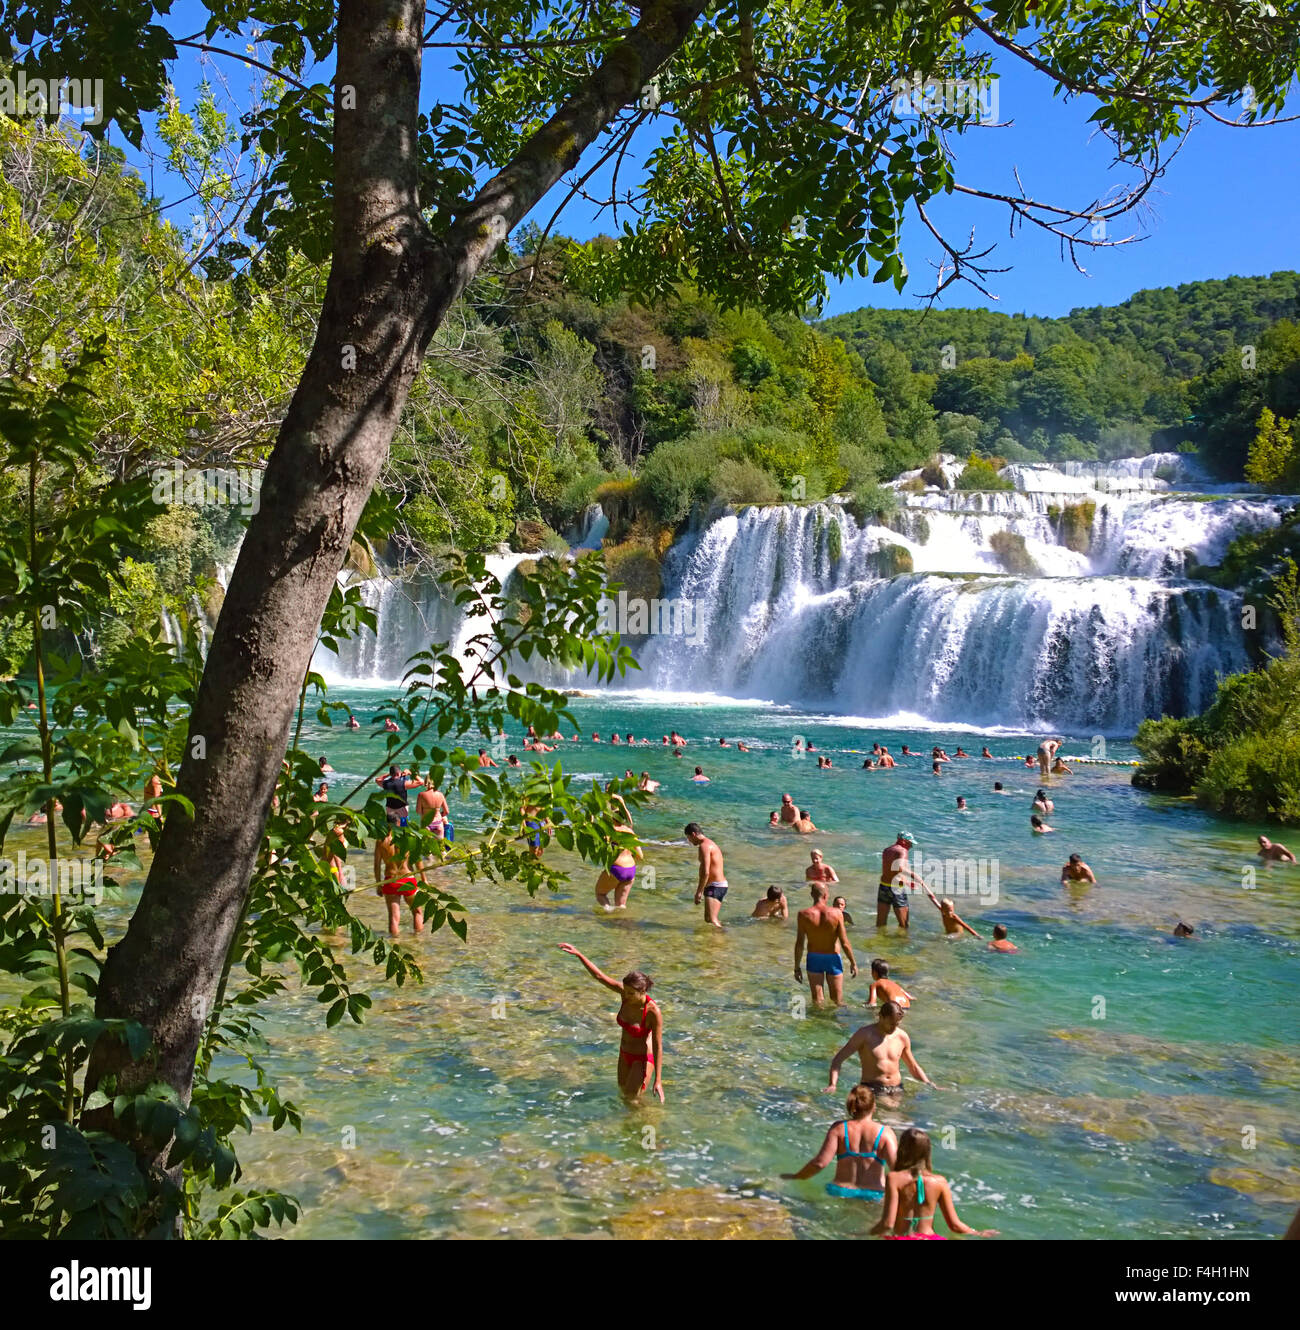 grand canyon tourist with Stock Photo Krkacroatia Tourists Enjoy A Bath At Krka Waterfalls Beautiful Natural 88884929 on Stock Photo Krkacroatia Tourists Enjoy A Bath At Krka Waterfalls Beautiful Natural 88884929 moreover Yellow Mountain likewise State furthermore 211 as well 213.